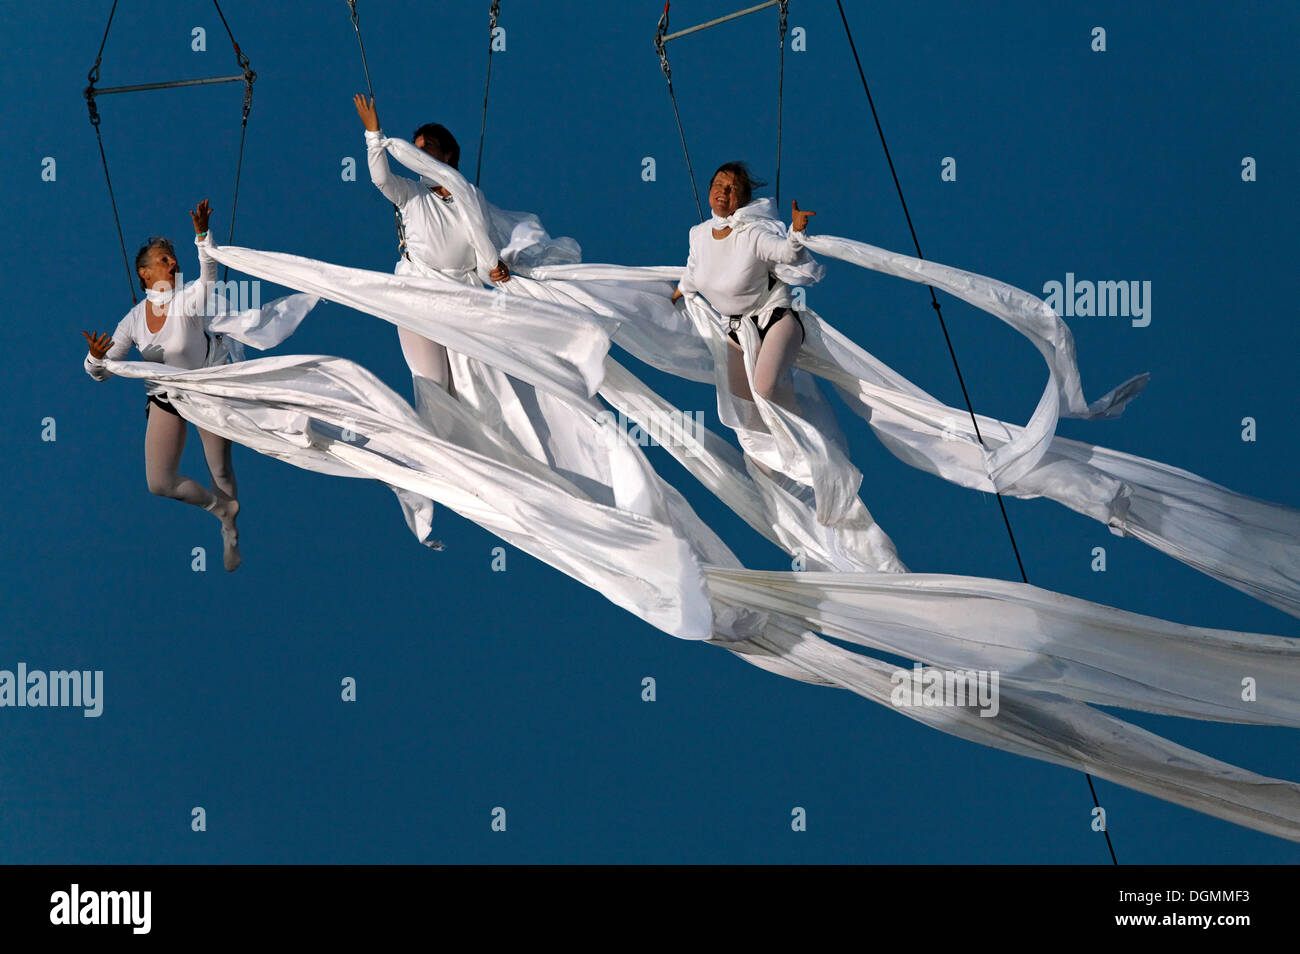 Three artistes hover in the air, wrapped in fluttering veils, Global Rheingold, open-air theater by La Fura dels Baus - Stock Image